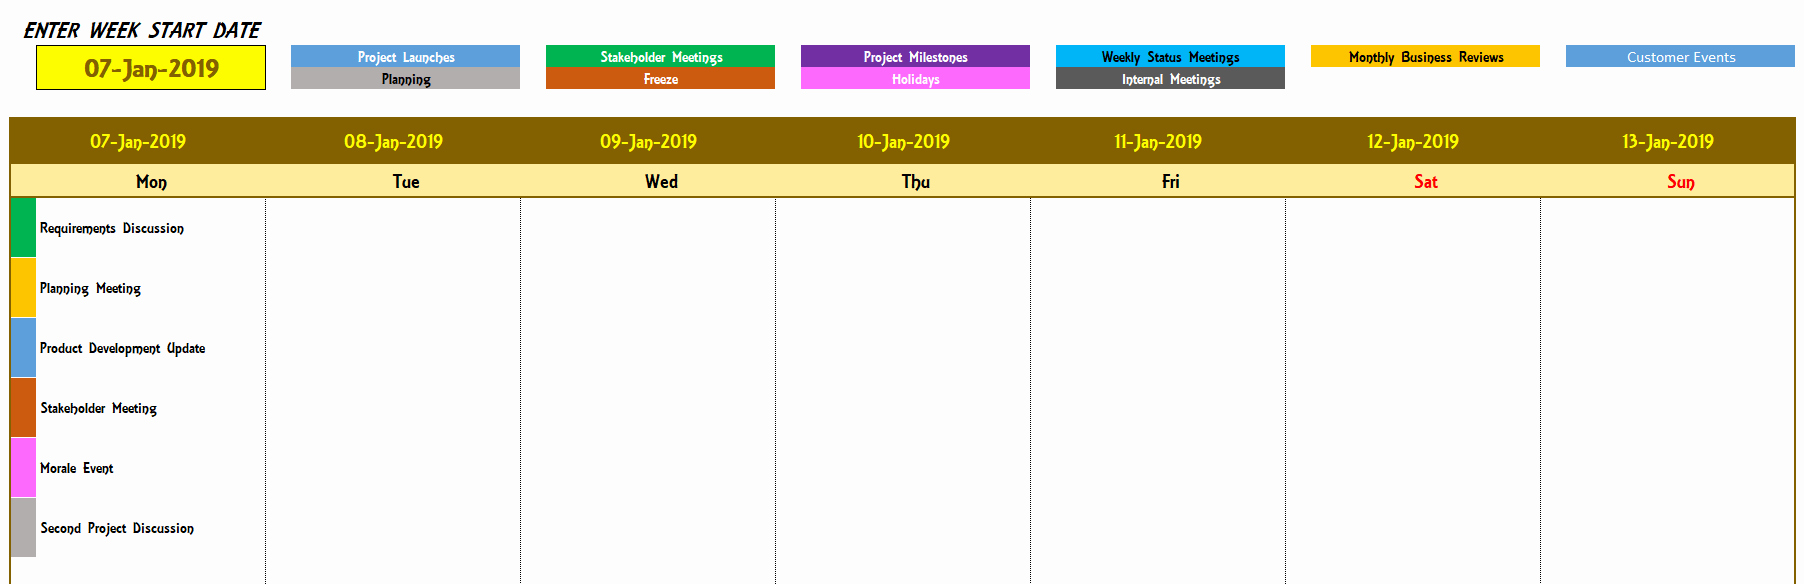 Weekly Calendar Template Excel Best Of Excel Calendar Template Excel Calendar 2019 2020 or Any